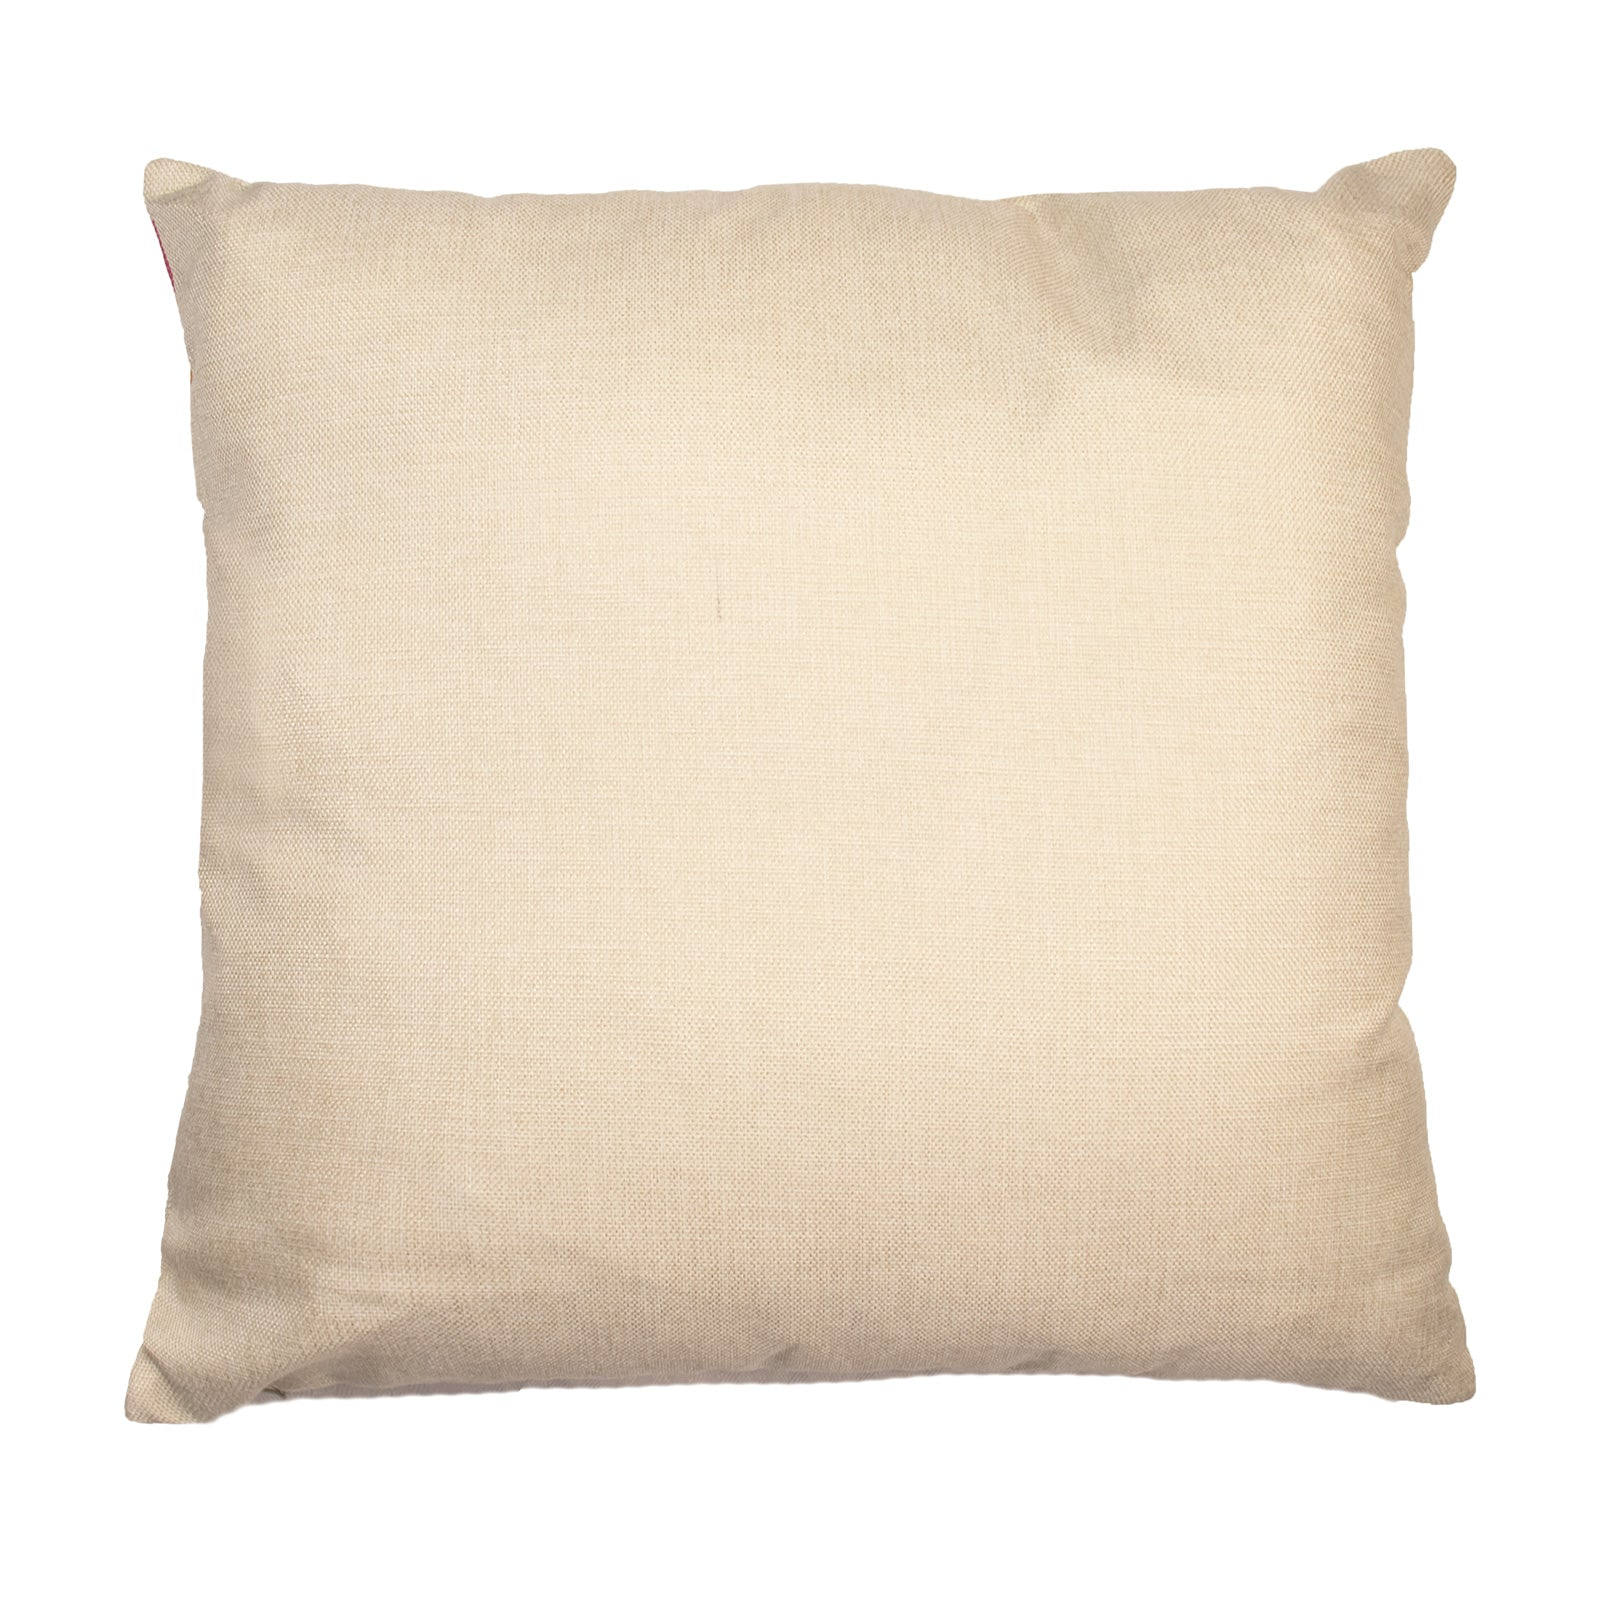 Kentucky Rainbow Pillow-Odds and Ends-KY for KY Store